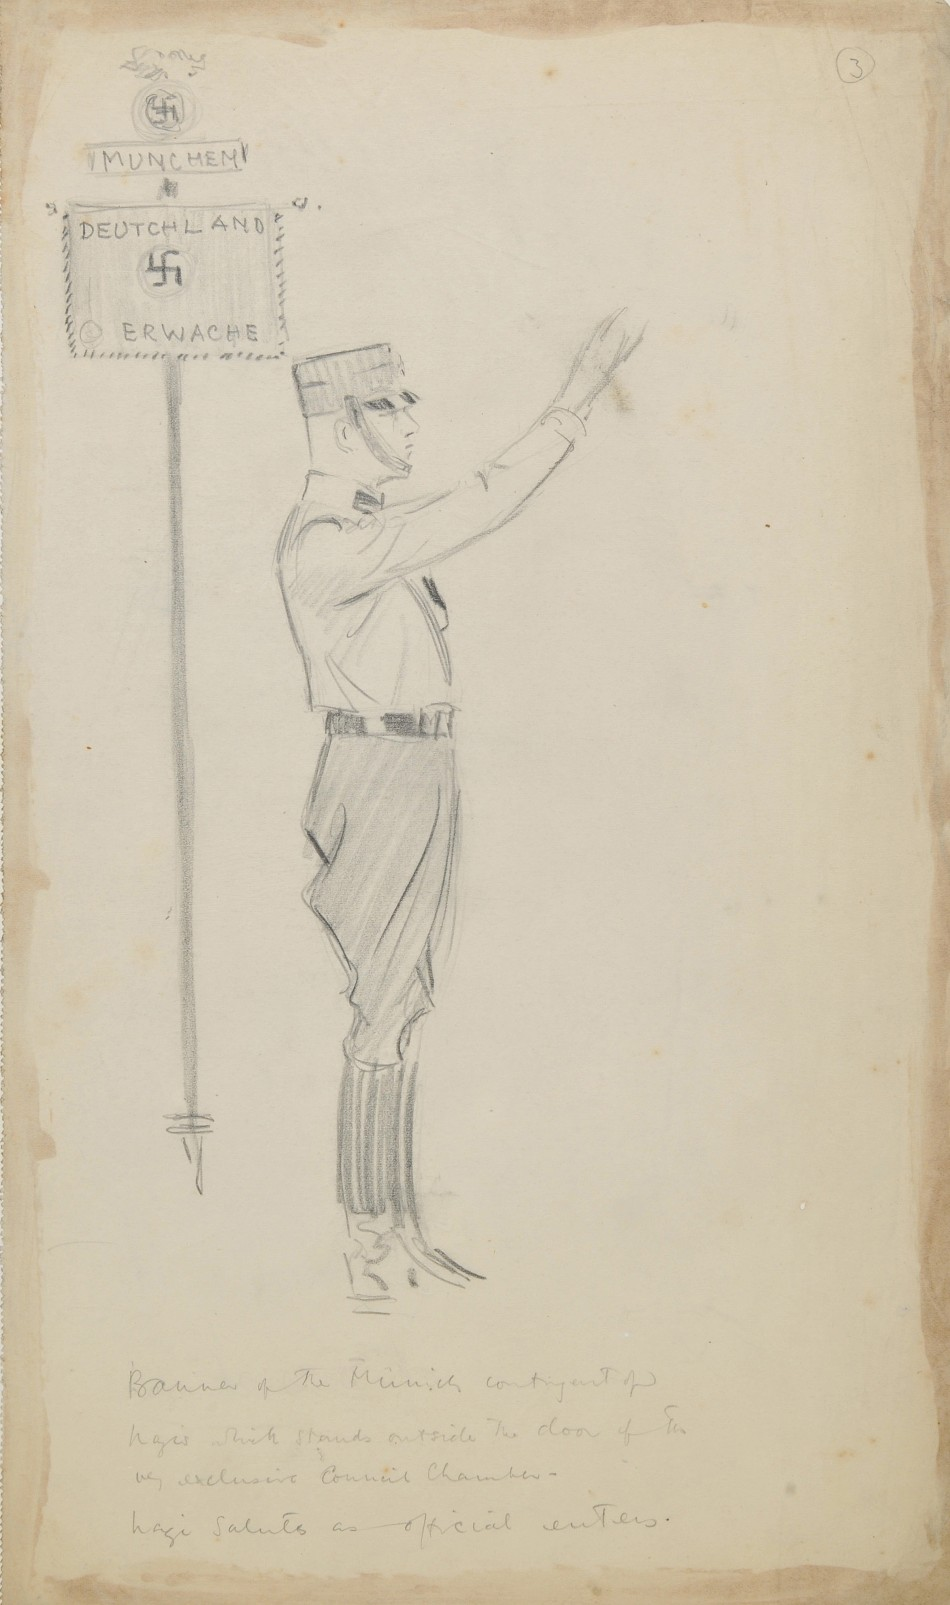 Lost Sketches of Adolf Hitler and Top Nazis Go Under The Hammer